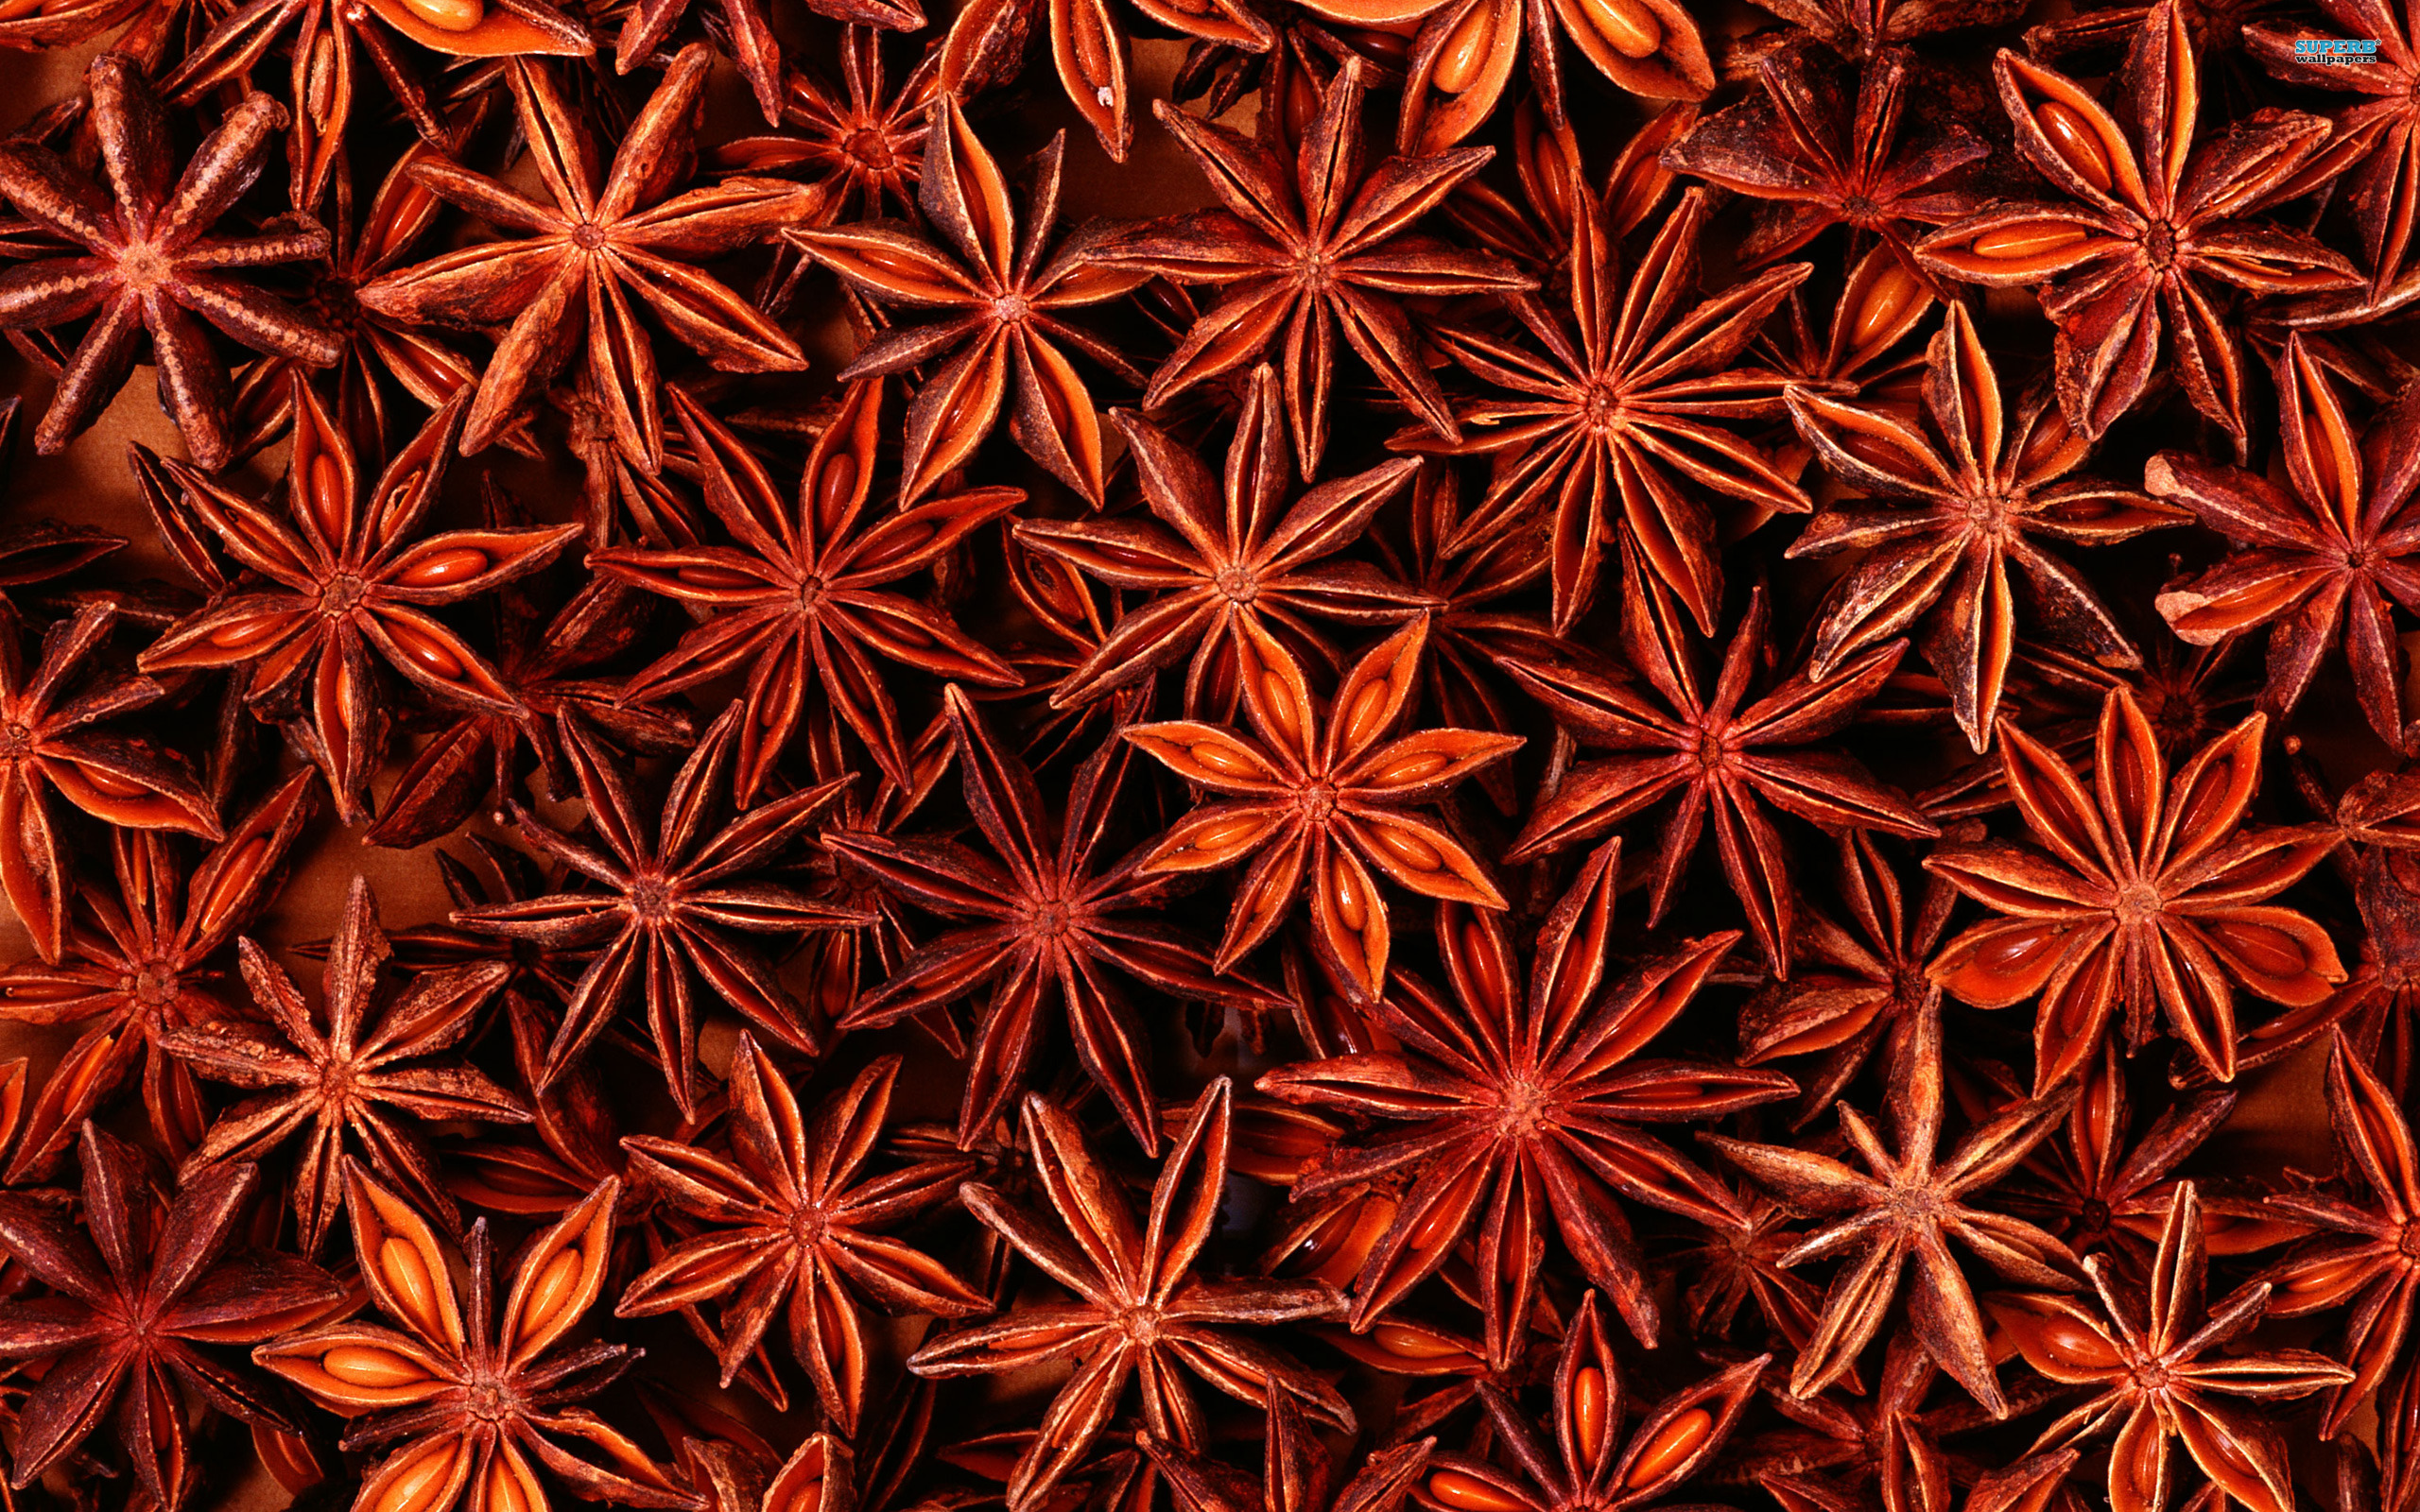 3 Star Anise Hd Wallpapers Background Images Wallpaper